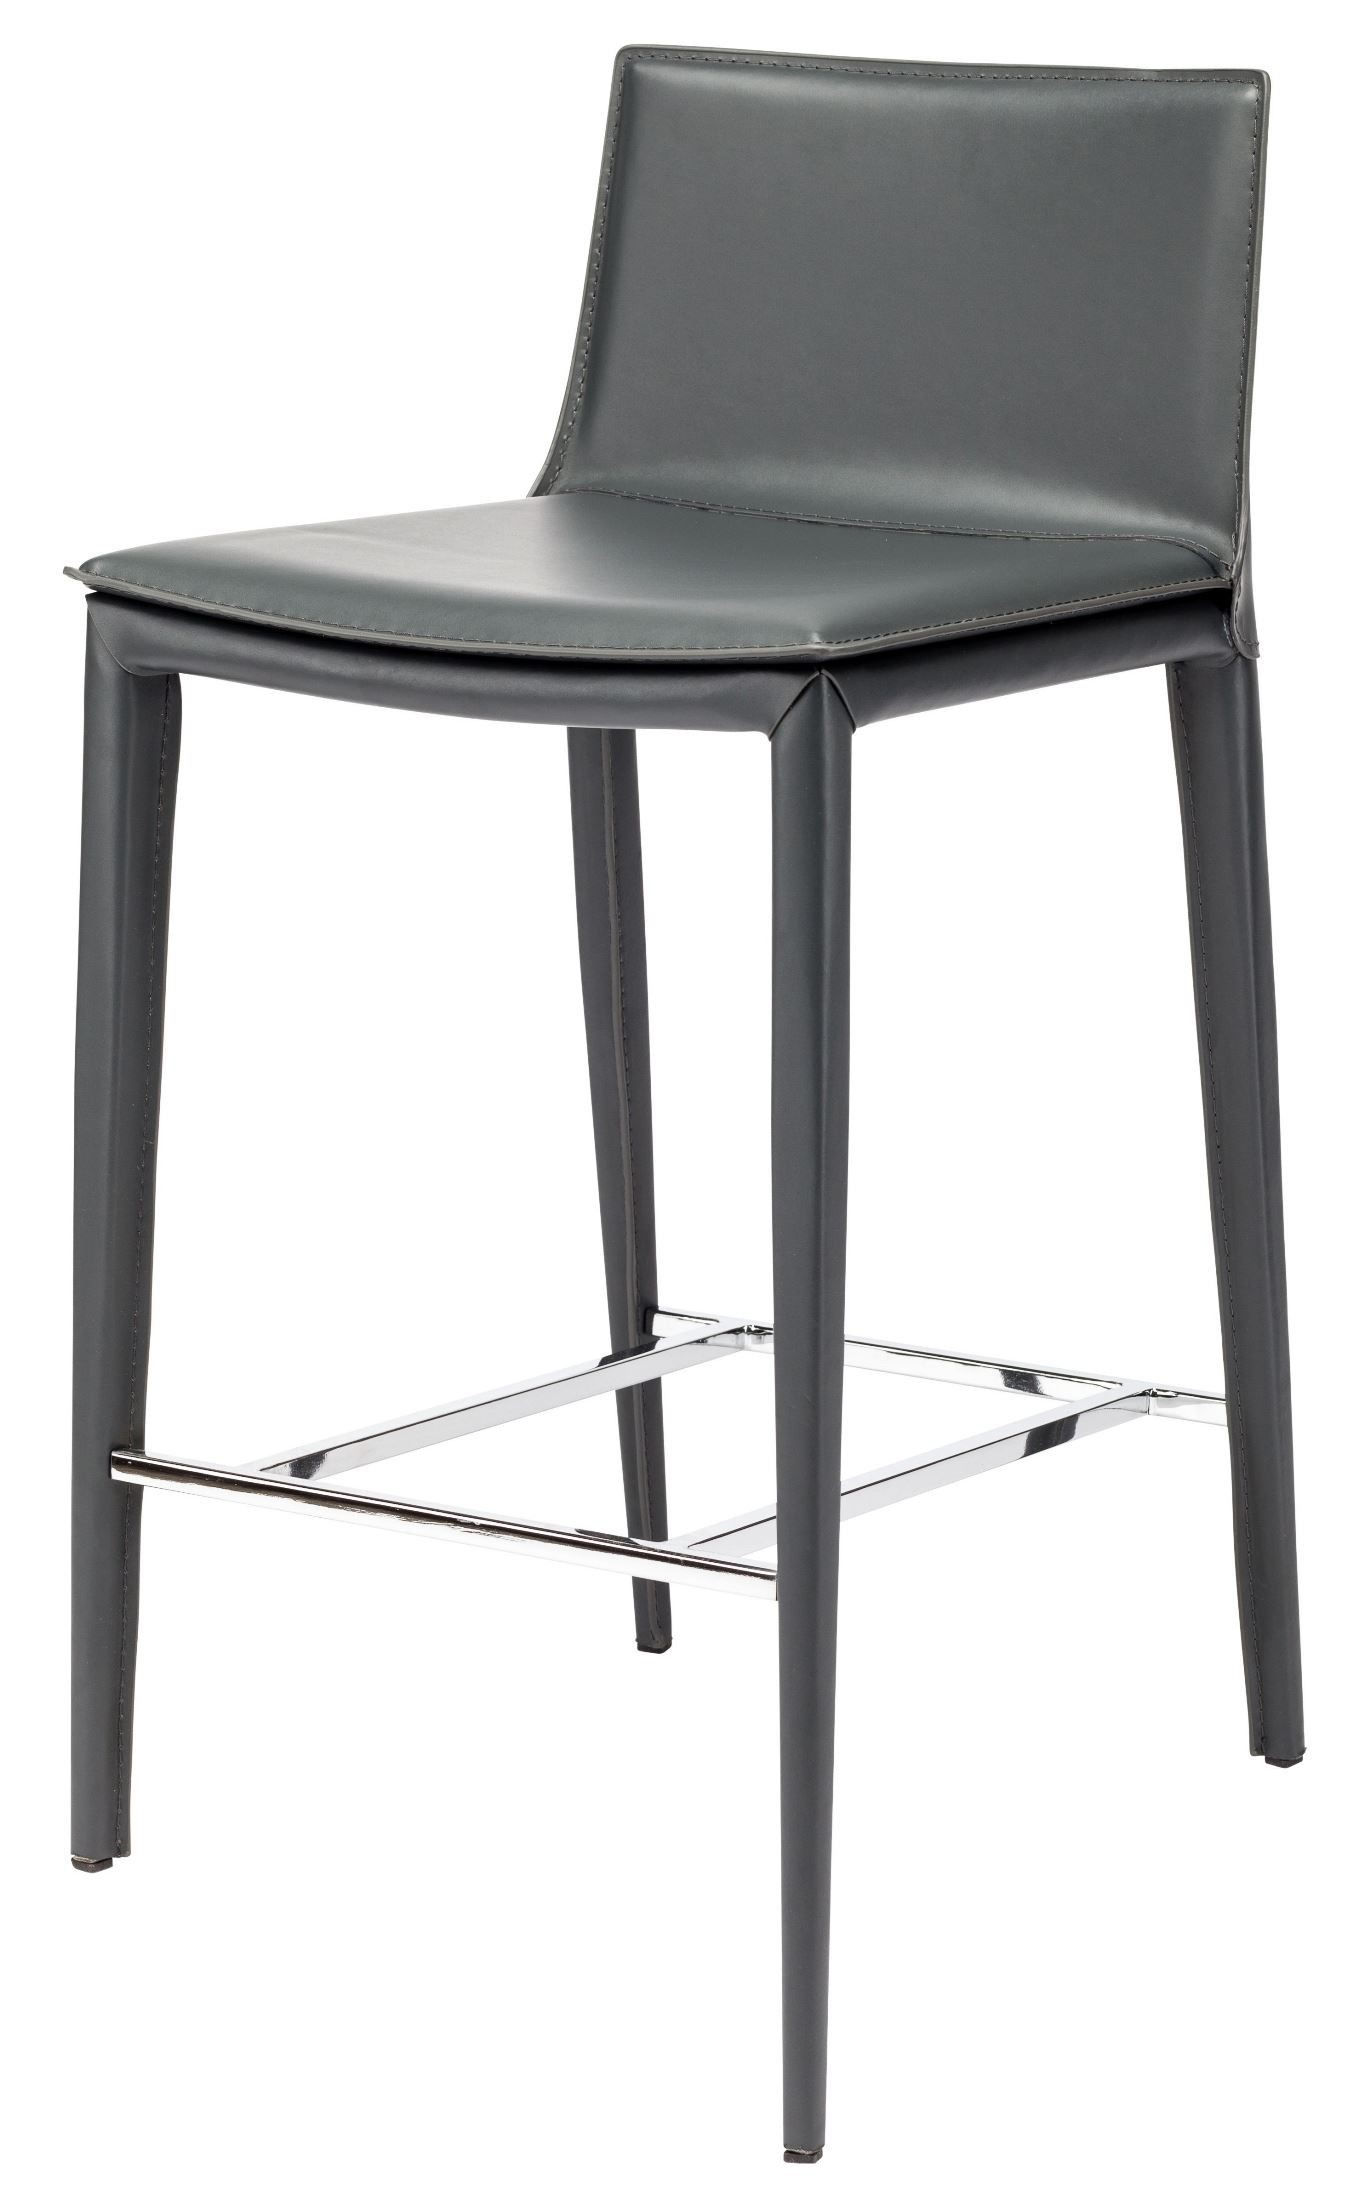 Palma Grey Leather Bar Stool Hgnd105 Nuevo